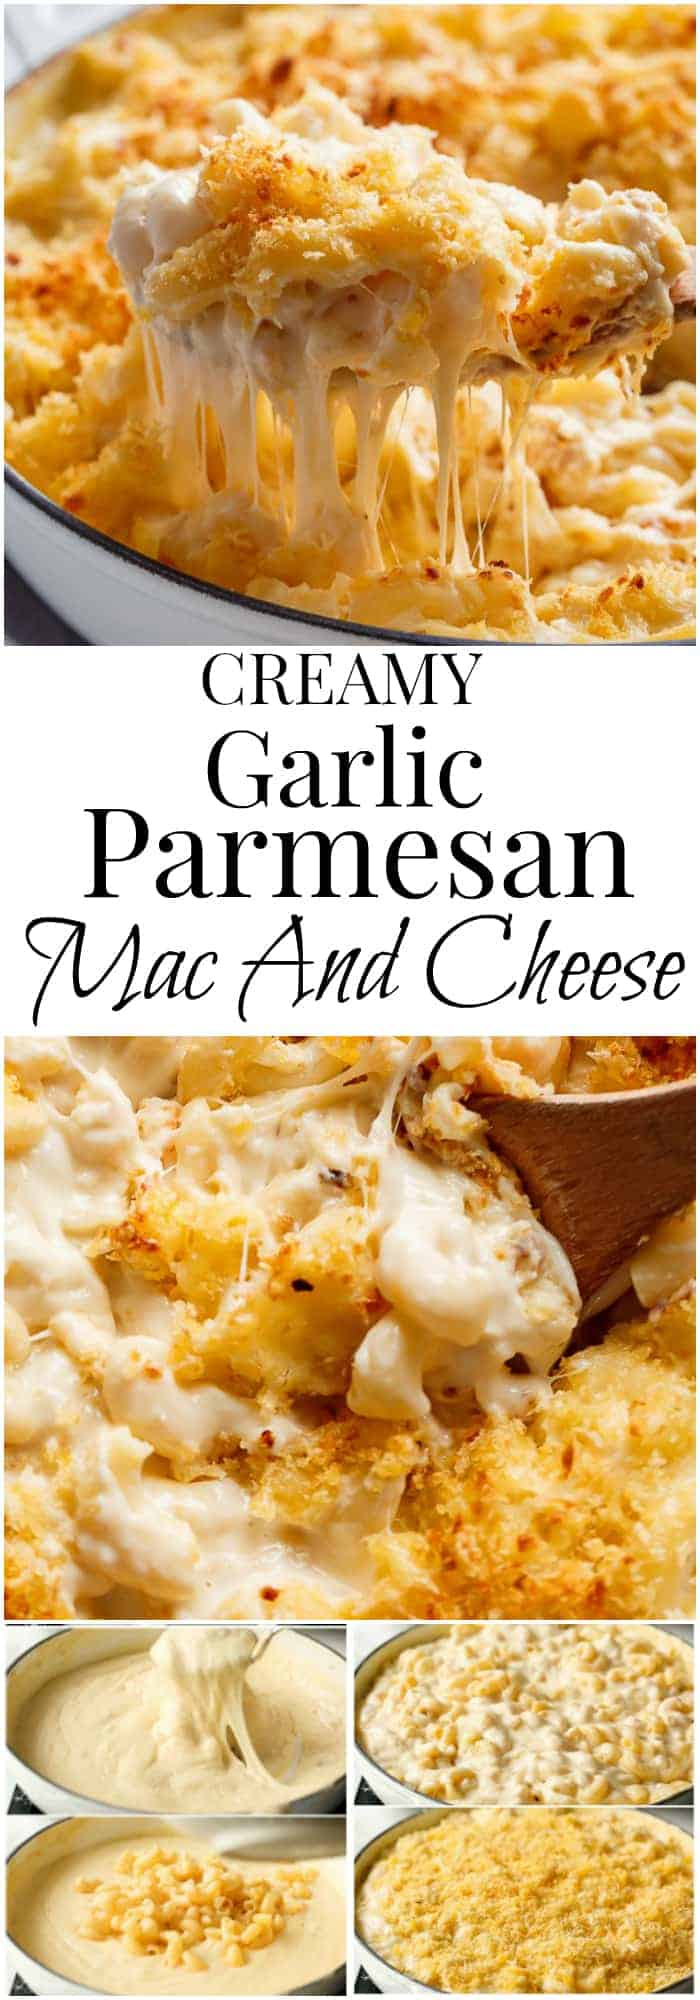 Garlic Parmesan Mac And Cheese is better than the original! A creamy garlic parmesan cheese sauce coats your macaroni, topped with parmesan fried bread crumbs, while saving some calories! | https://cafedelites.com